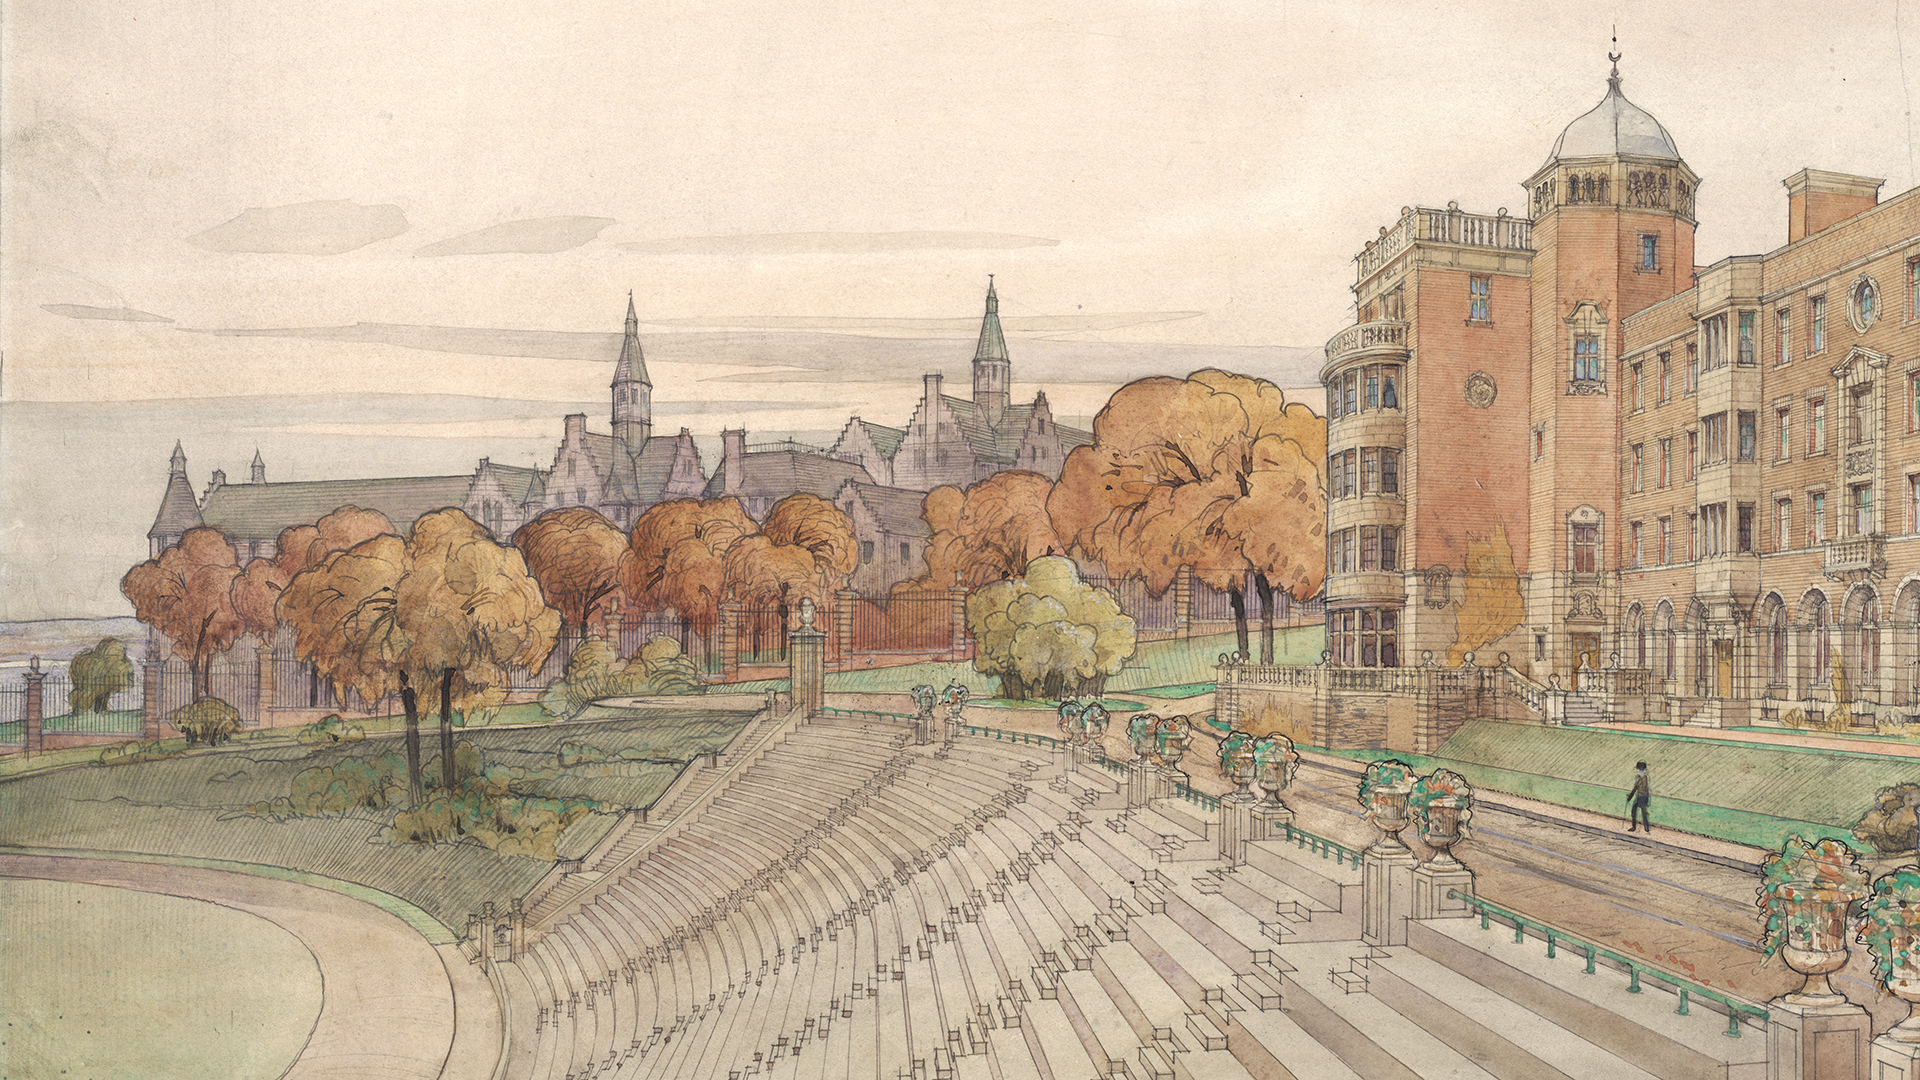 Proposed Student Residences by Percy Erskine Nobbs, 1918. John Bland Canadian Architecture Collection. Rare Books and Special Collections.